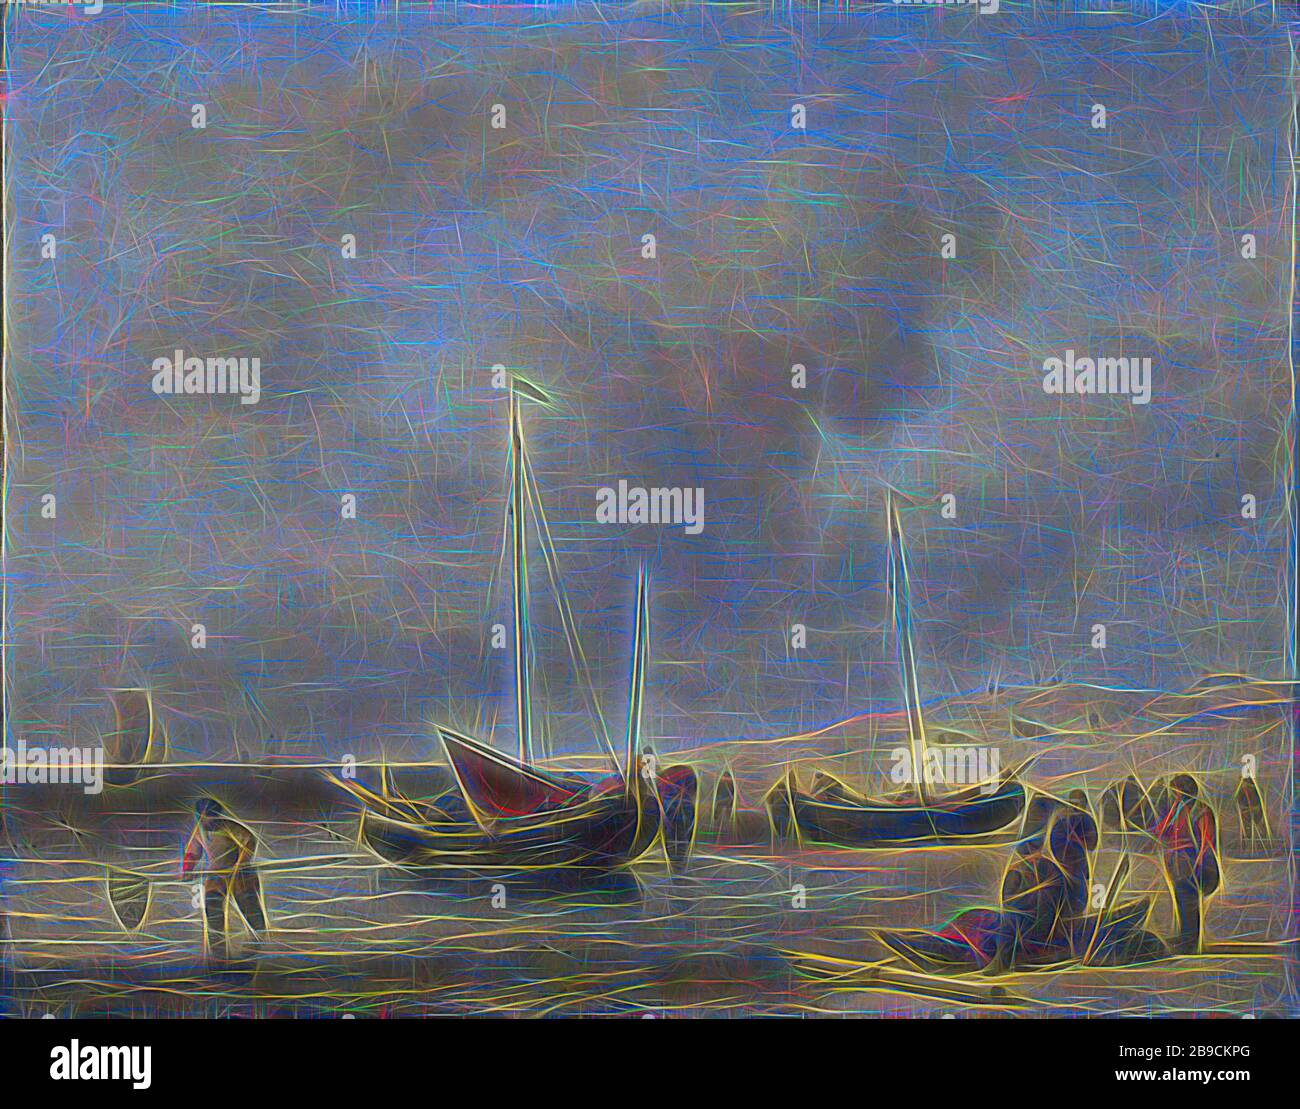 """Oil painting on wood panel /""""Boats/"""" 2.8 x3.6/"""" x 10 ea"""